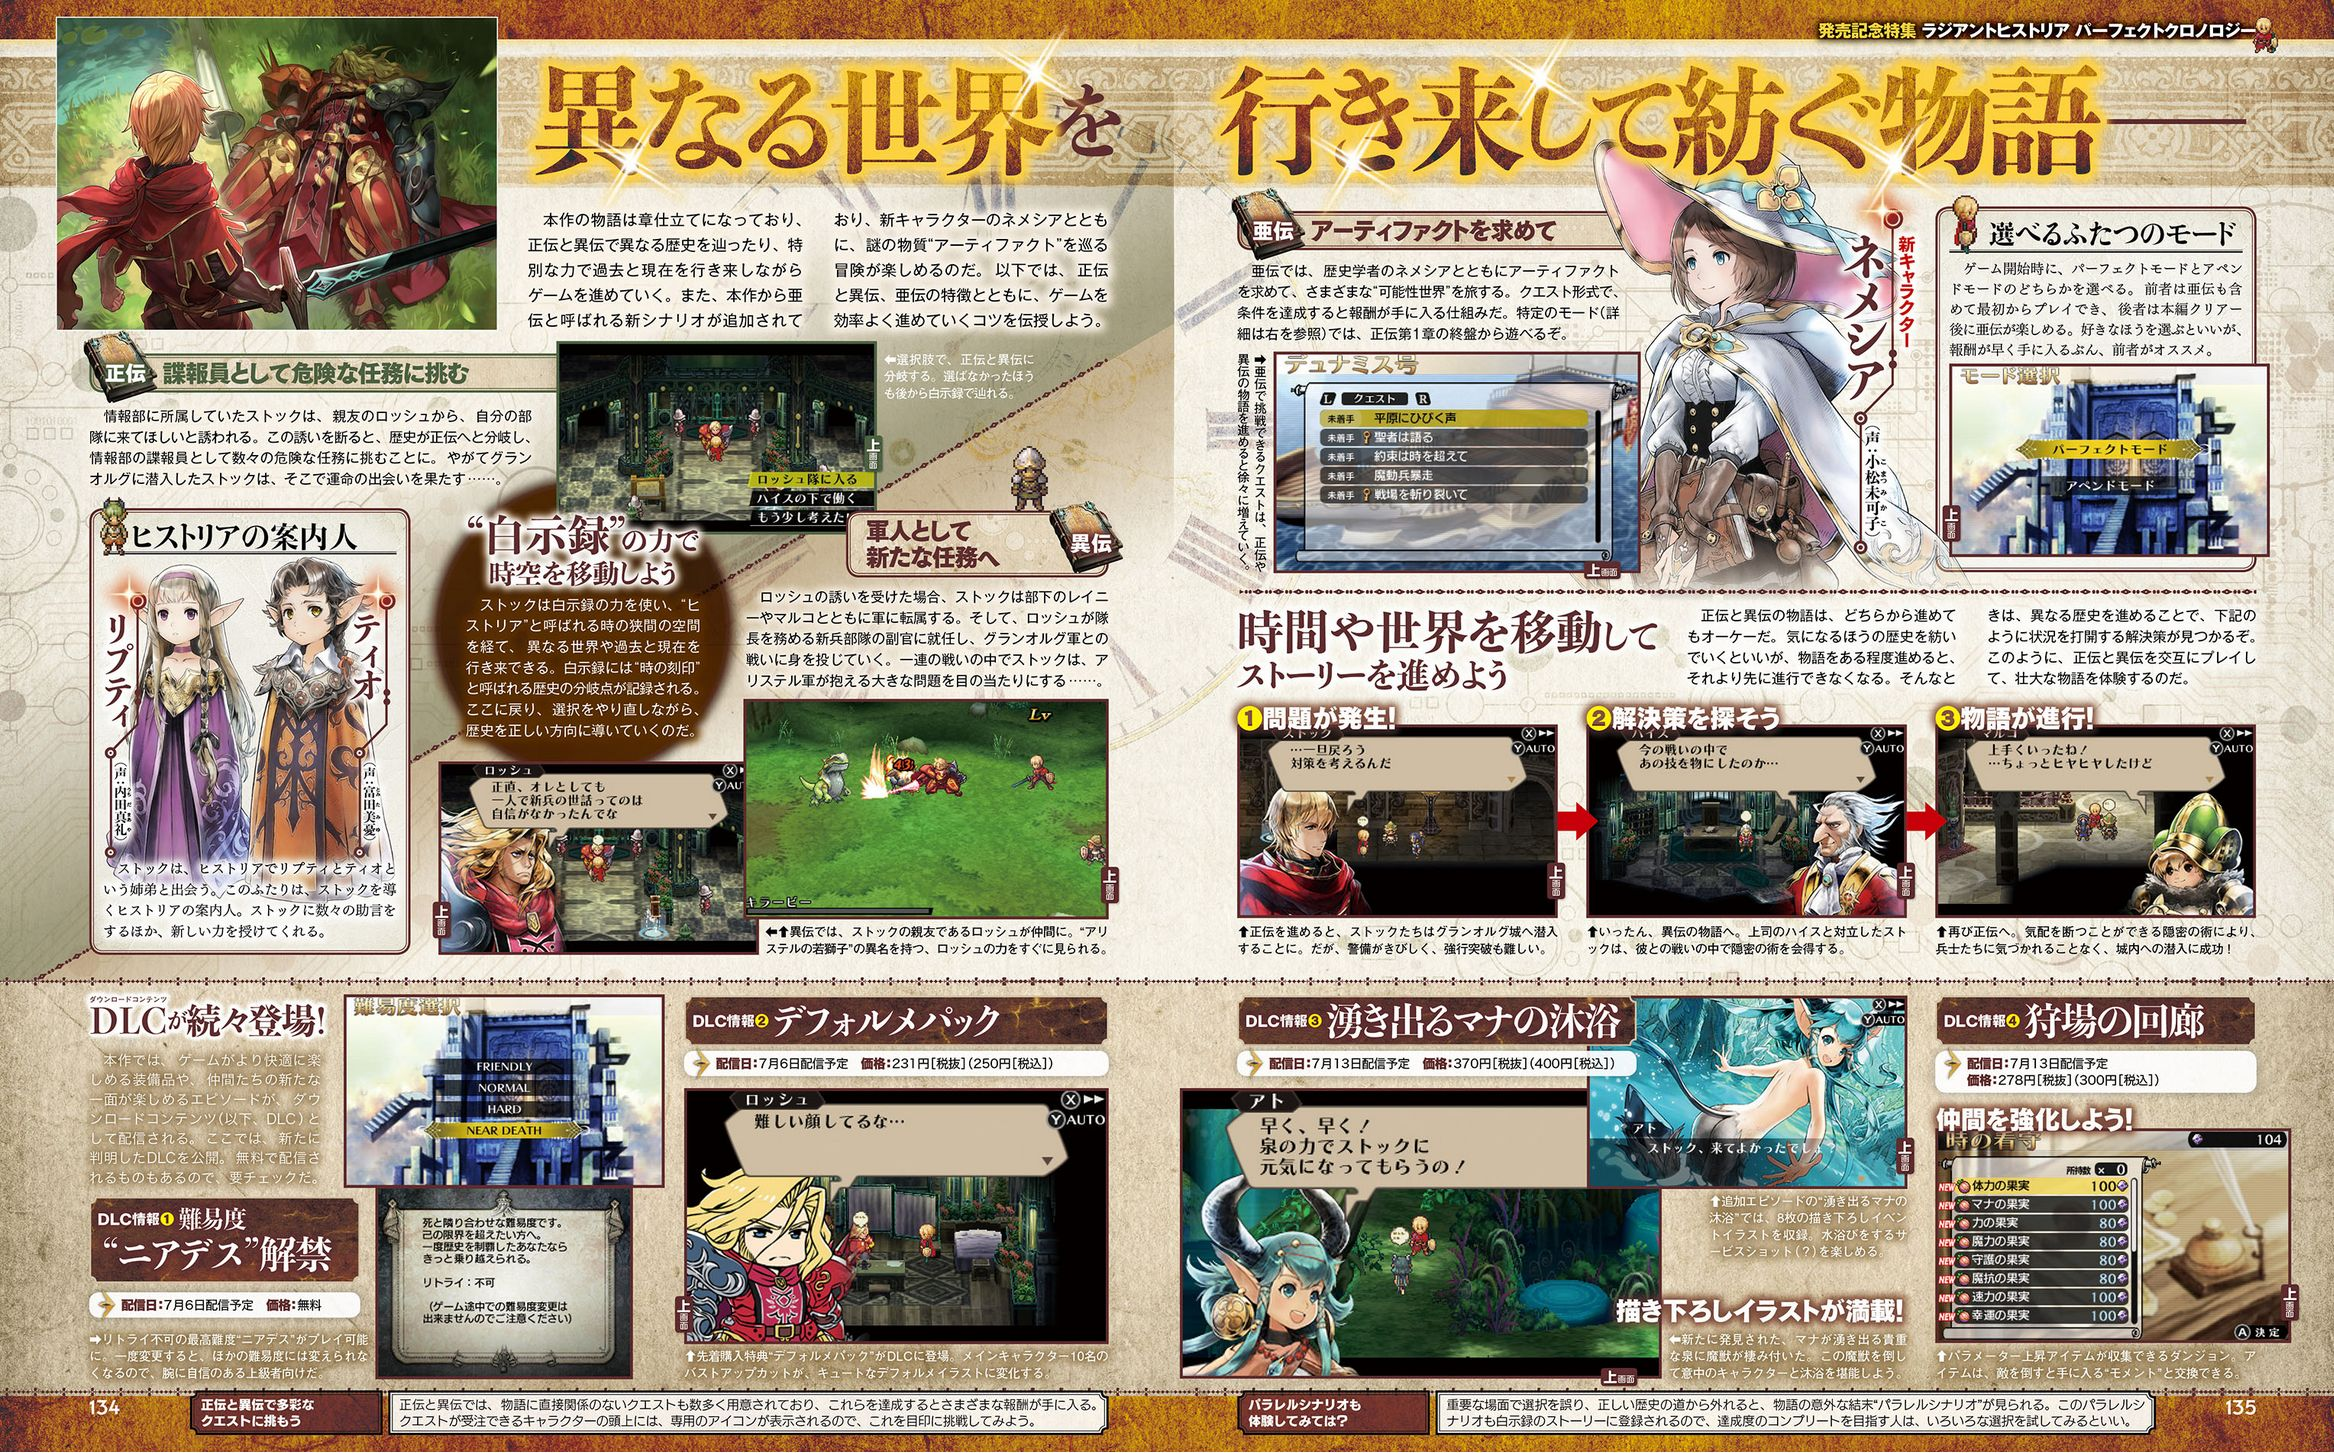 Radiant Historia: Perfect Chronology Famitsu #1491 Scan